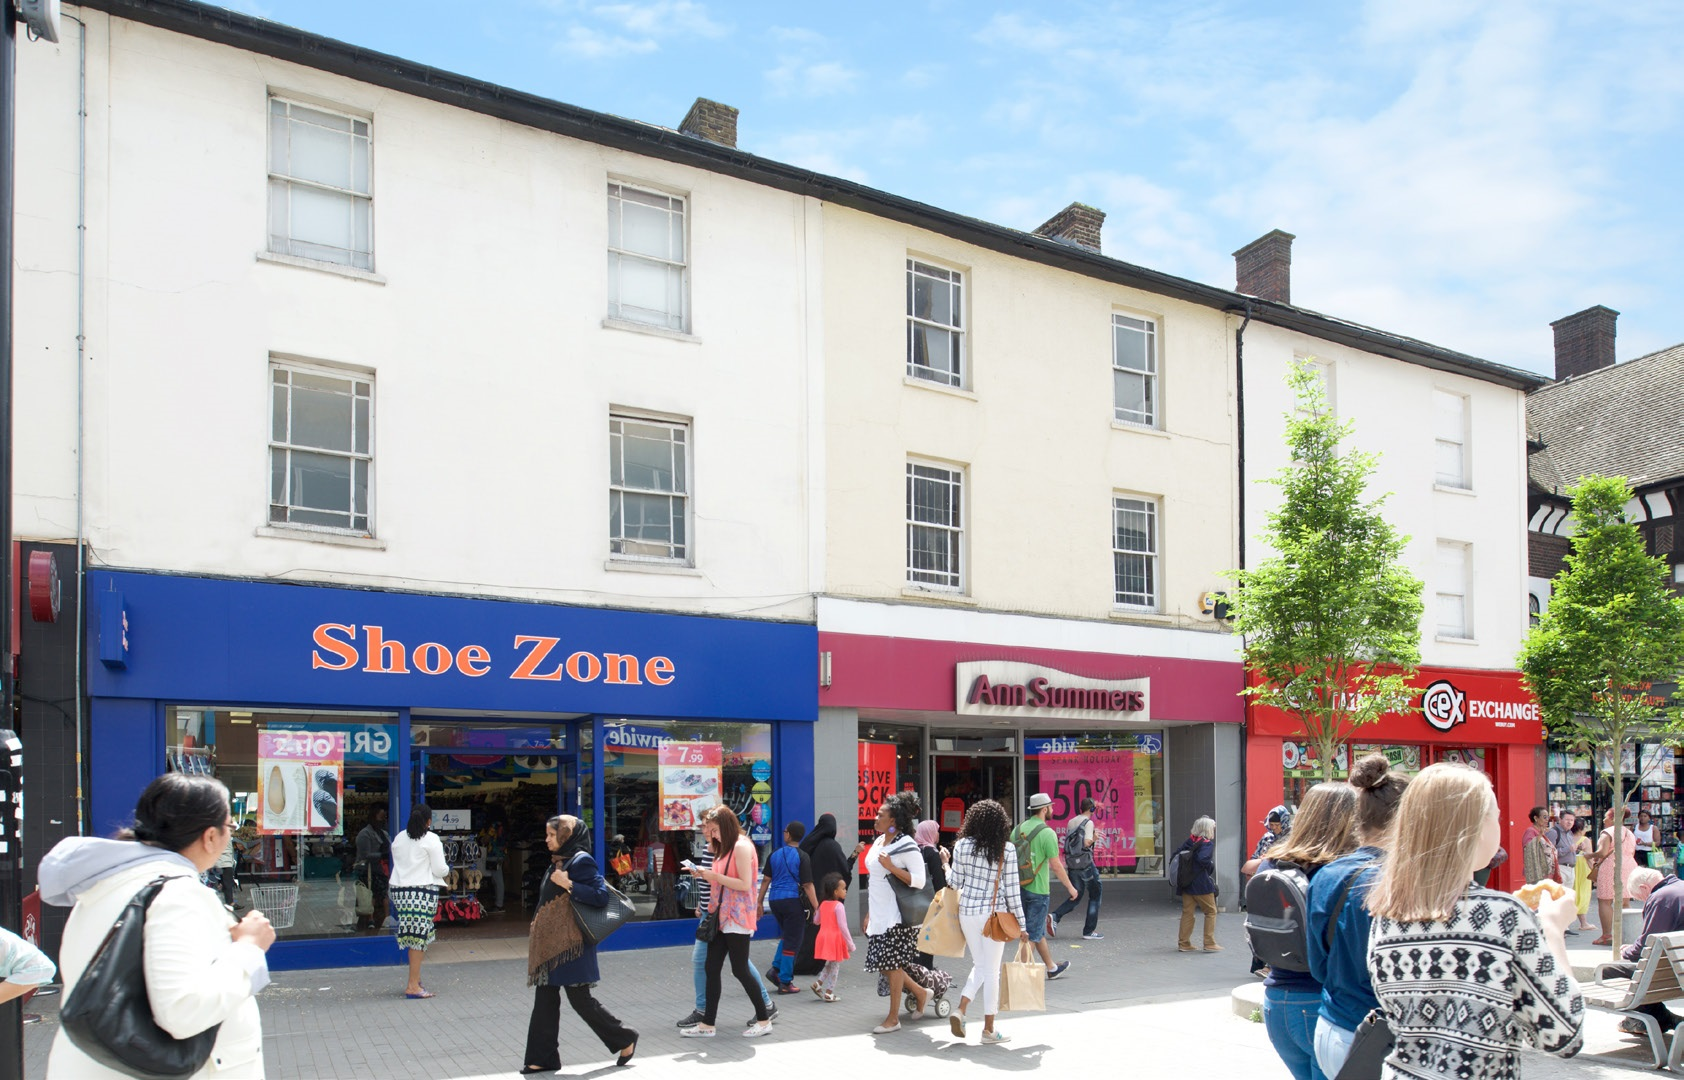 Commercial Property For Sale In Hounslow